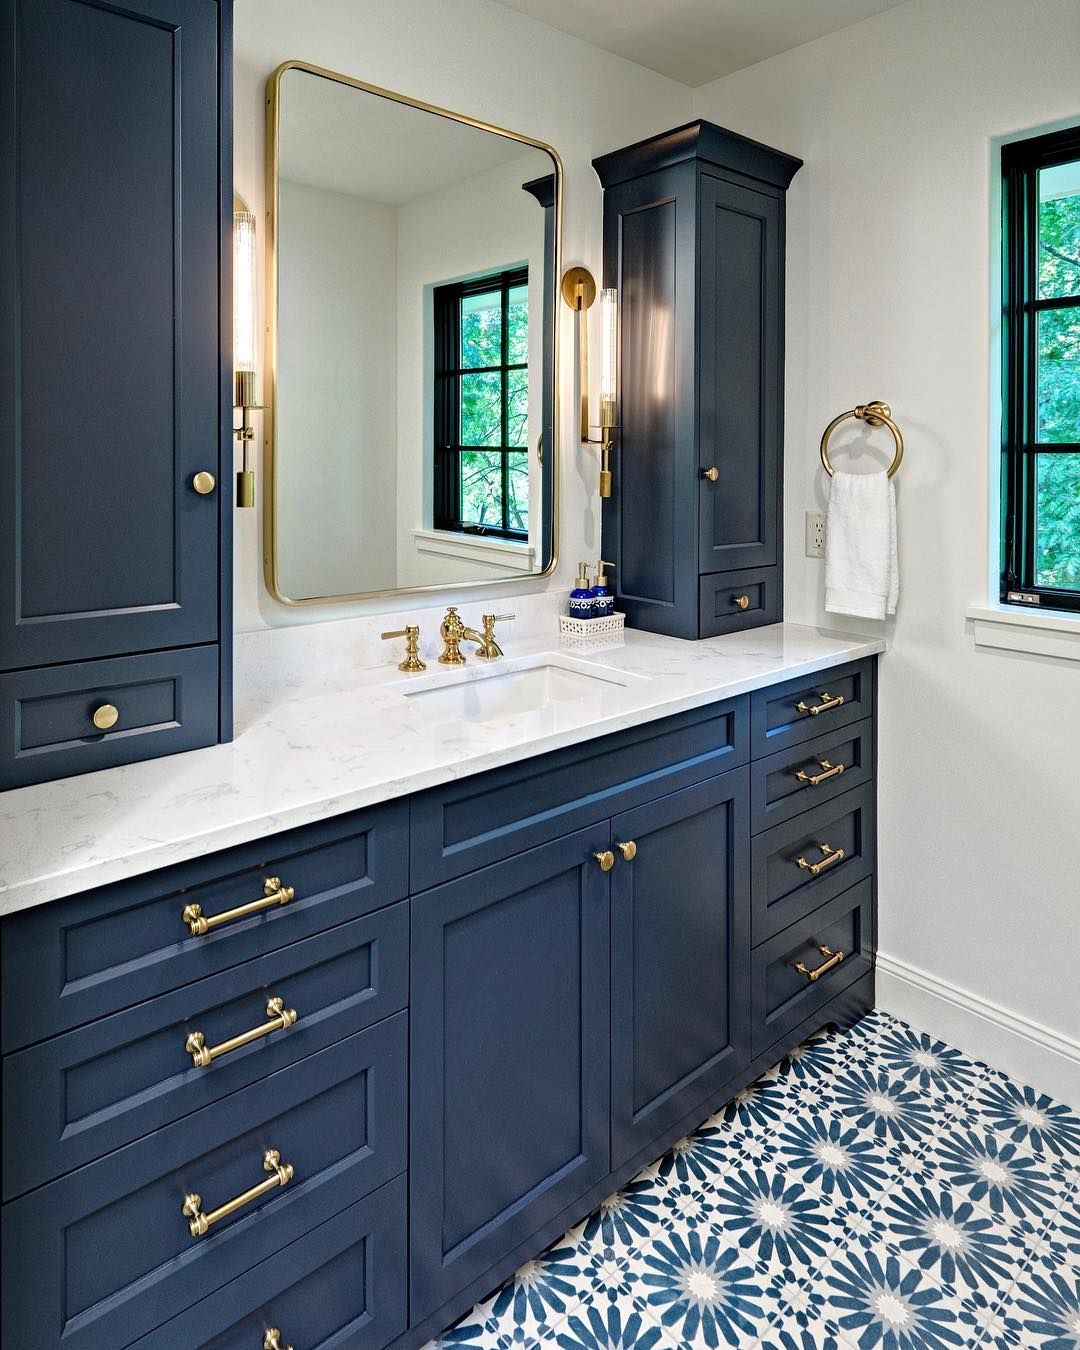 Dreaming Of Blue Hues This Remodeled Blue And Gold Bathroom With Patterned Tile From Boyer Building Corp Is Ab Gold Bathroom Amazing Bathroom Remodels Remodel